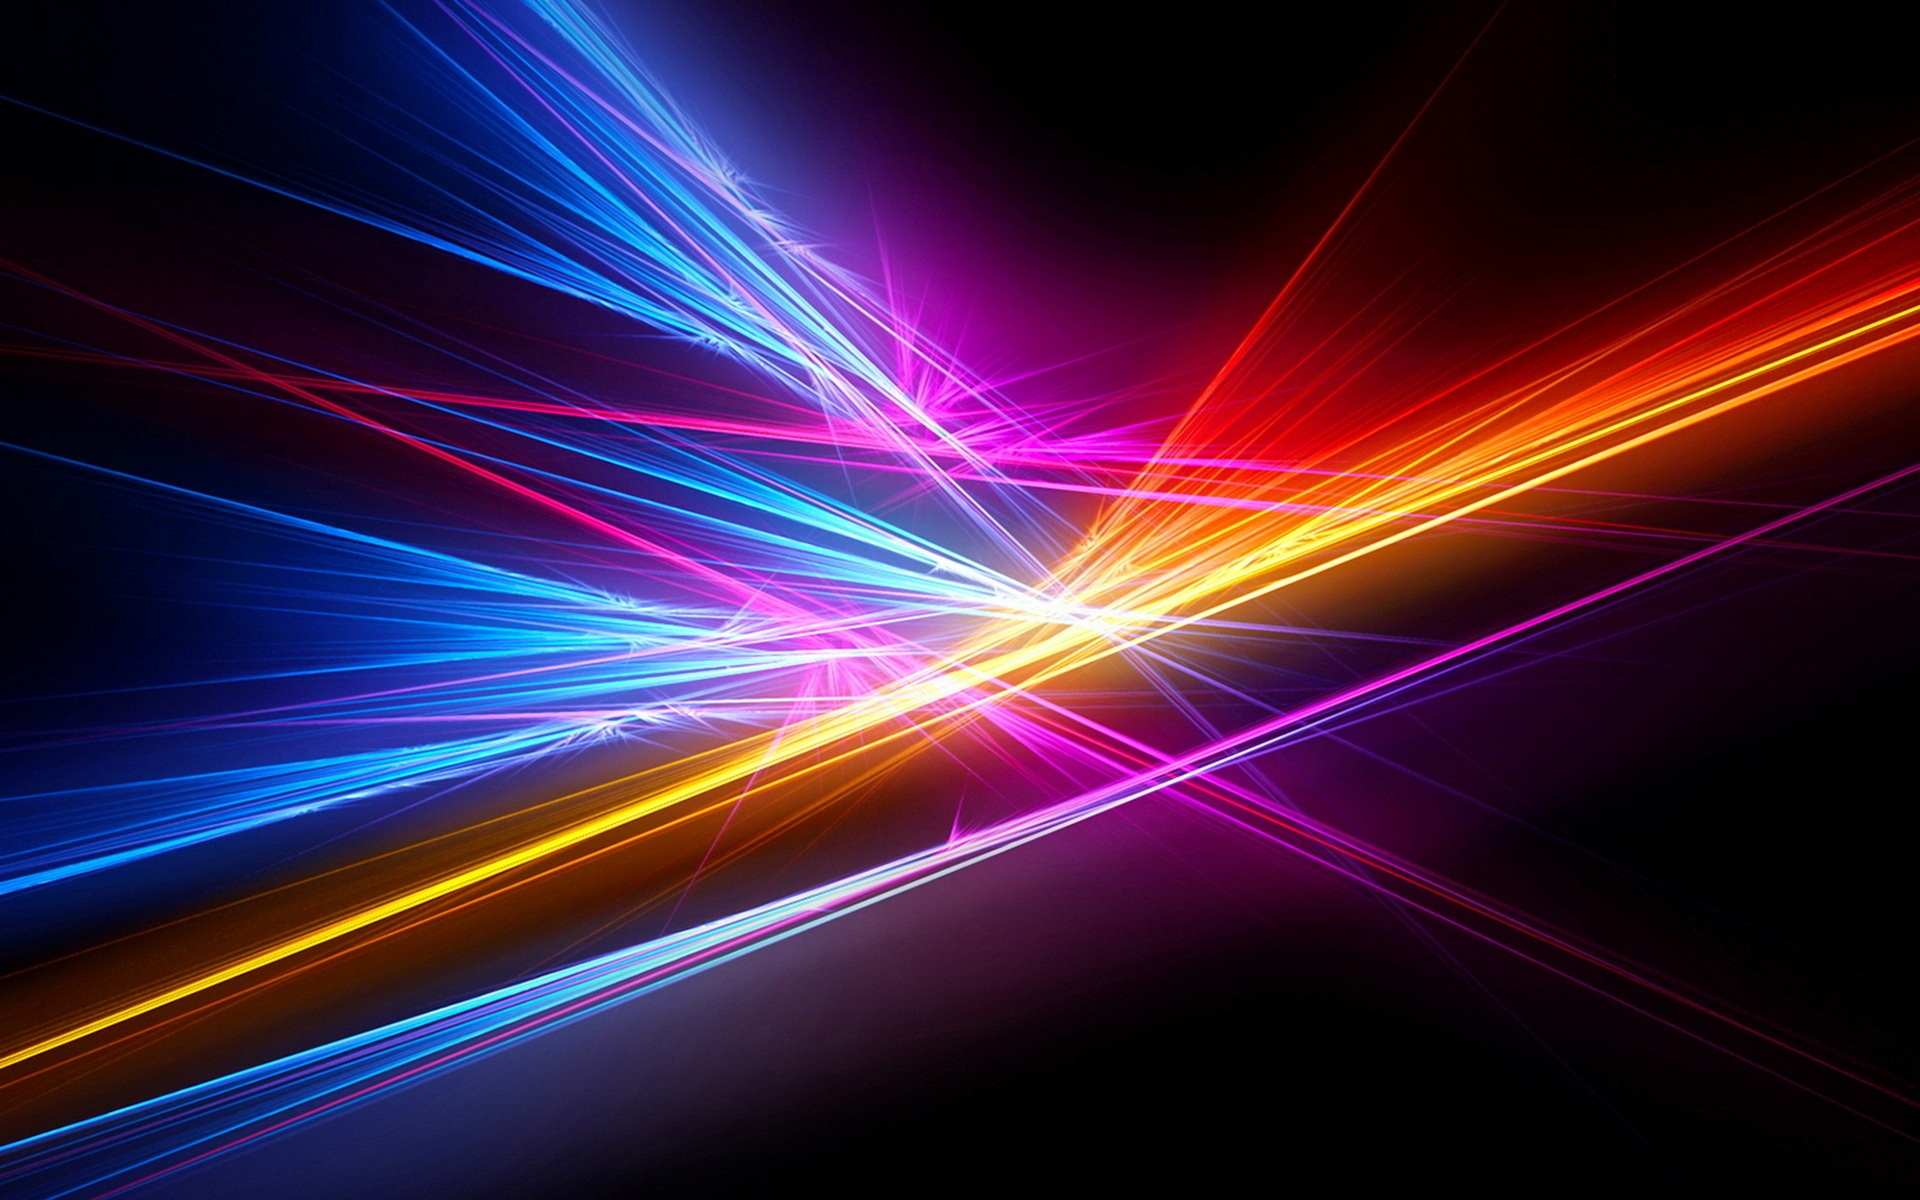 Collection of Abstract Lights Wallpaper on HDWallpapers